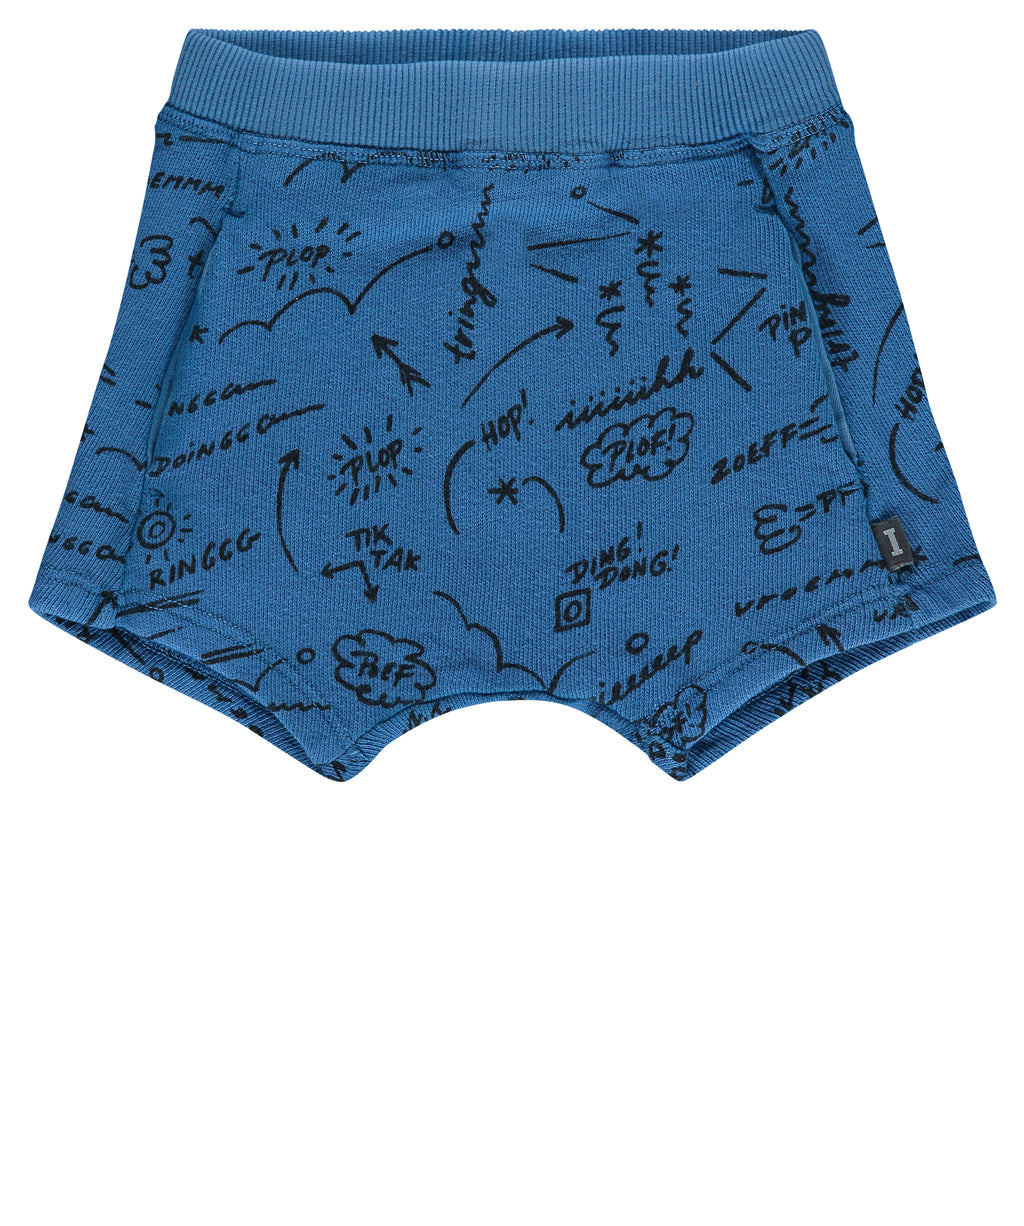 Imps & Elfs - Shorts Cornflower Blue